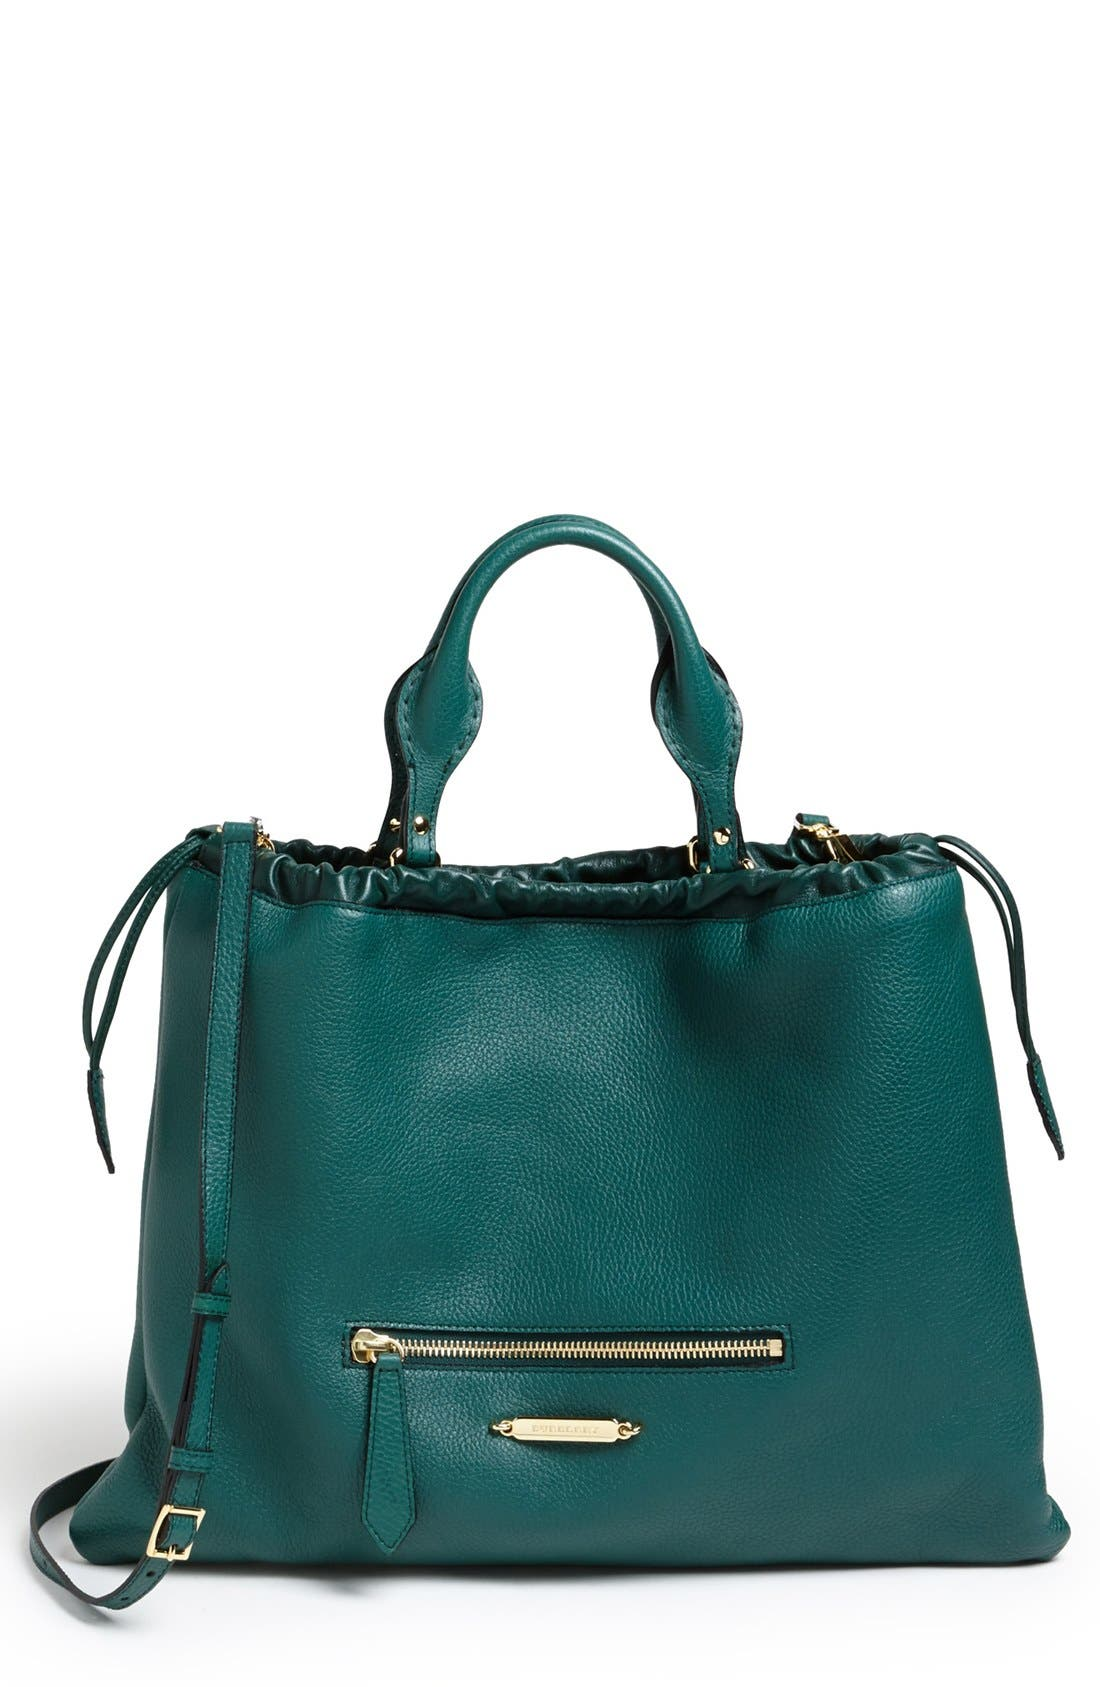 Main Image - Burberry 'The Big Crush' Calfskin Tote